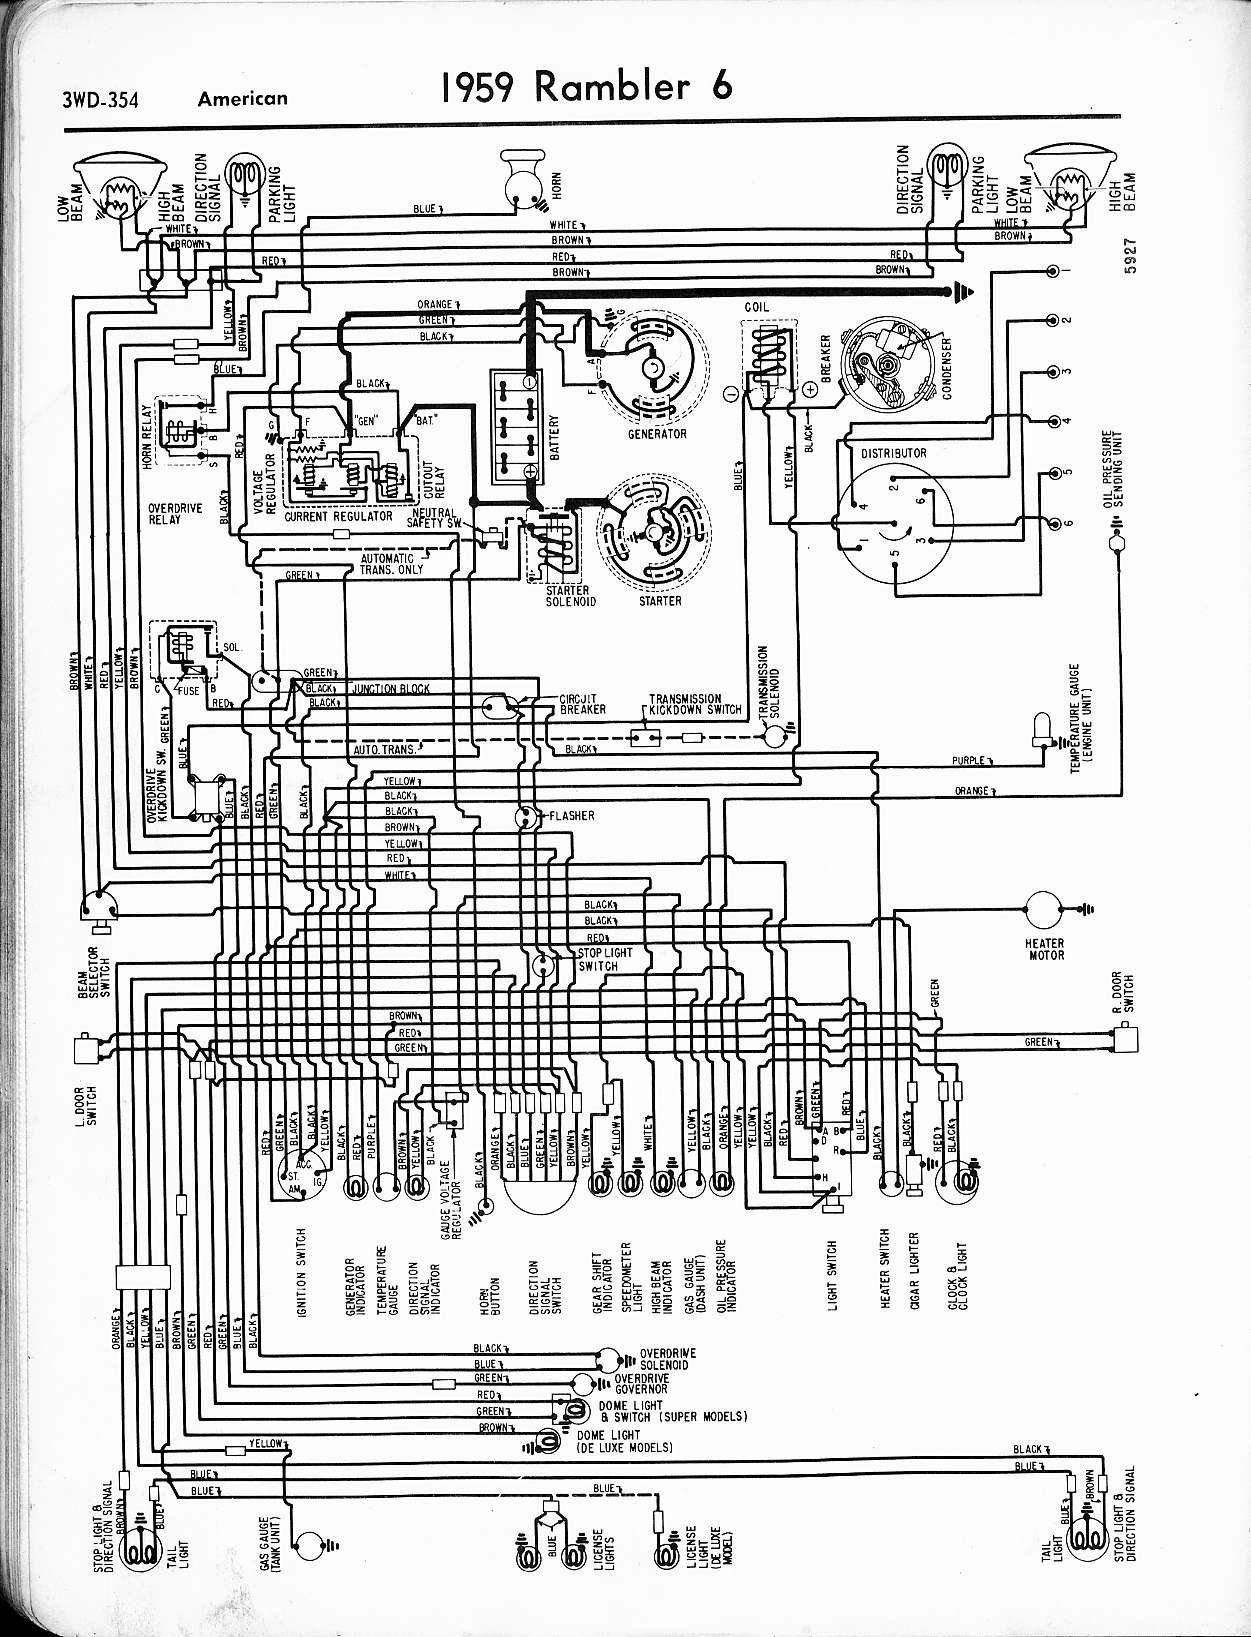 1968 Car Wiring Diagram - Wiring Diagram Schematic Name on 1975 corvette ignition switch diagram, bayliner ignition switch diagram, coil on plug diagram, ignition coil diagram,